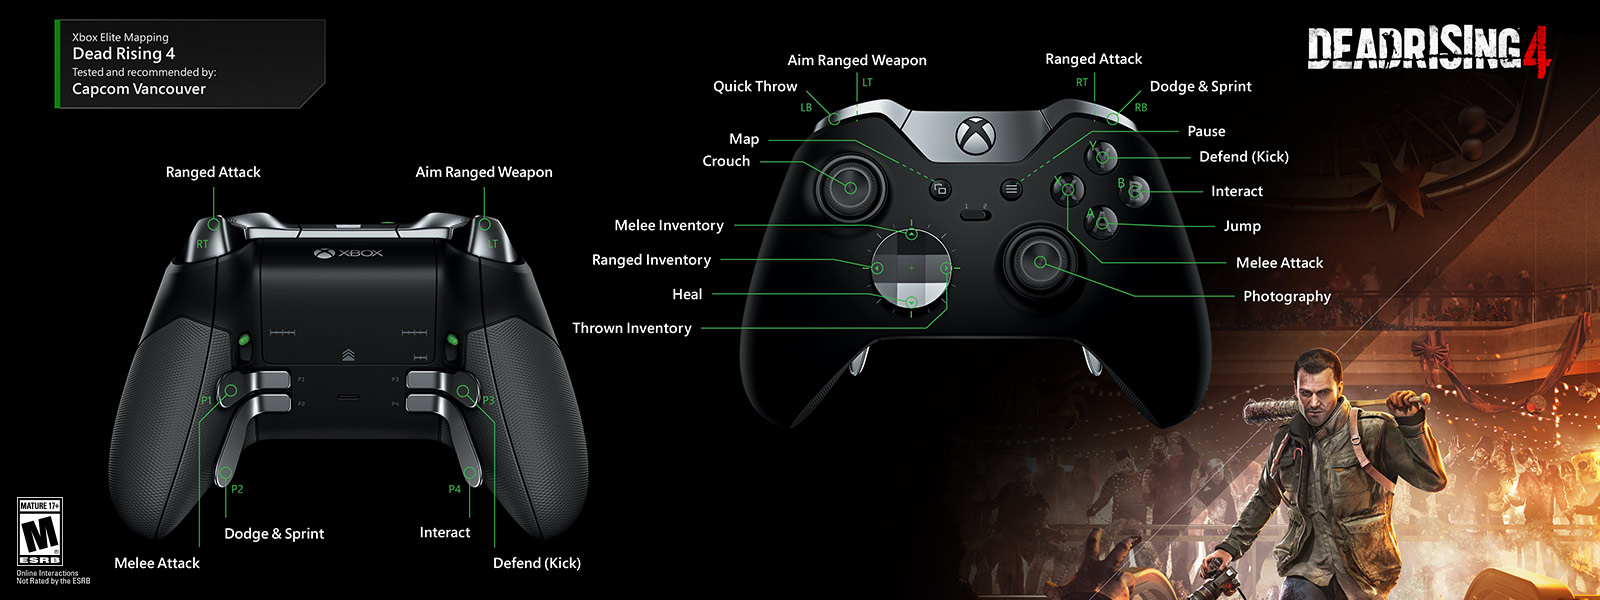 Xbox Elite Wireless Controller | Xbox One on dead rising 3 map guide, dead rising 3 map detail, dead rising 3 map ham, dead rising 3 map to in morgue, dead rising 3 map key, dead rising 3 world map, dead rising 3 map buildings, dead rising 3 full map with points, dead rising 3 map sunset hills, dead rising 3 item map, dead rising 3 blueprint locations map,